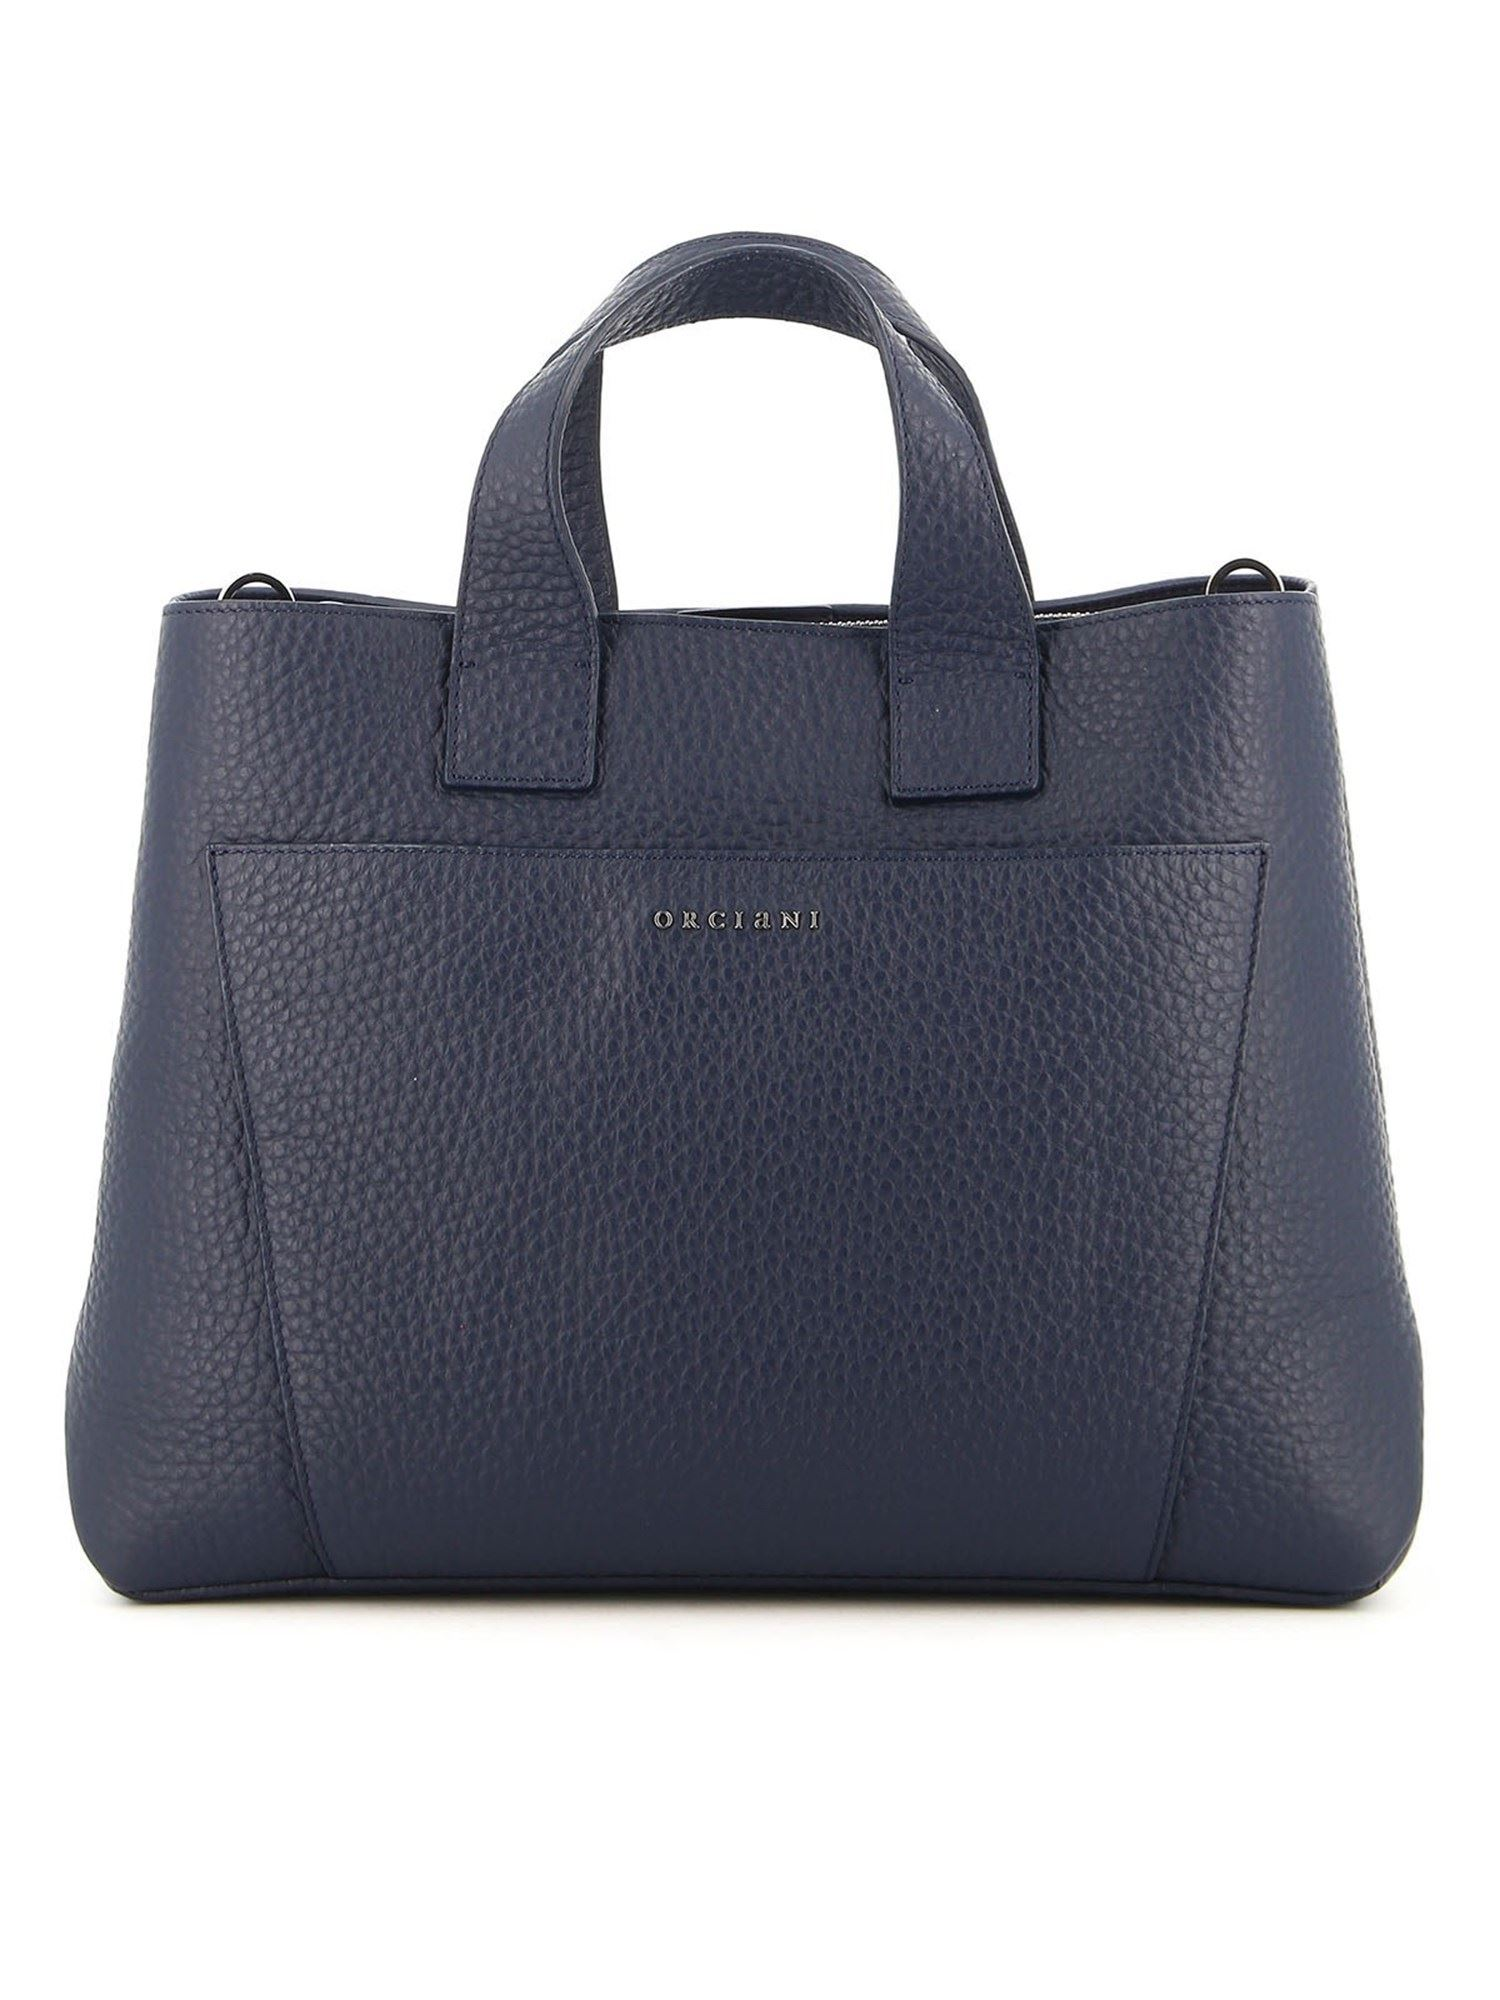 Orciani Leathers NORA SOFT LARGE TOTE BAG IN BLUE